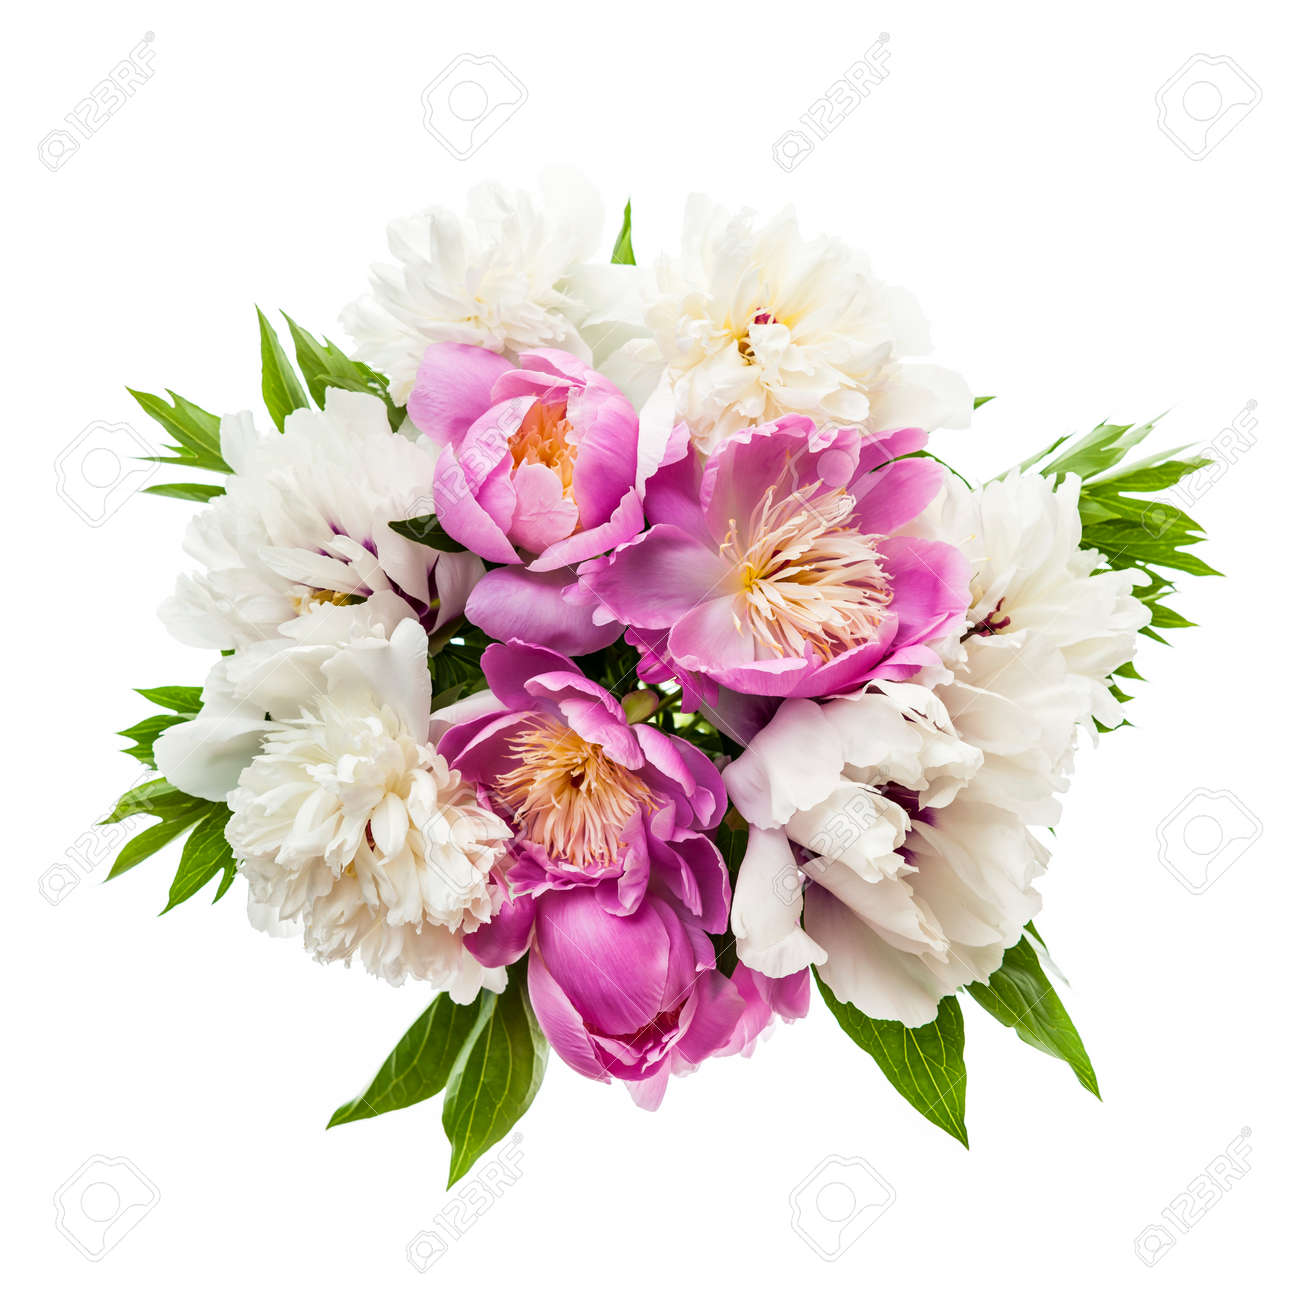 Bouquet of fresh peony flowers isolated on white background Stock Photo - 26501432